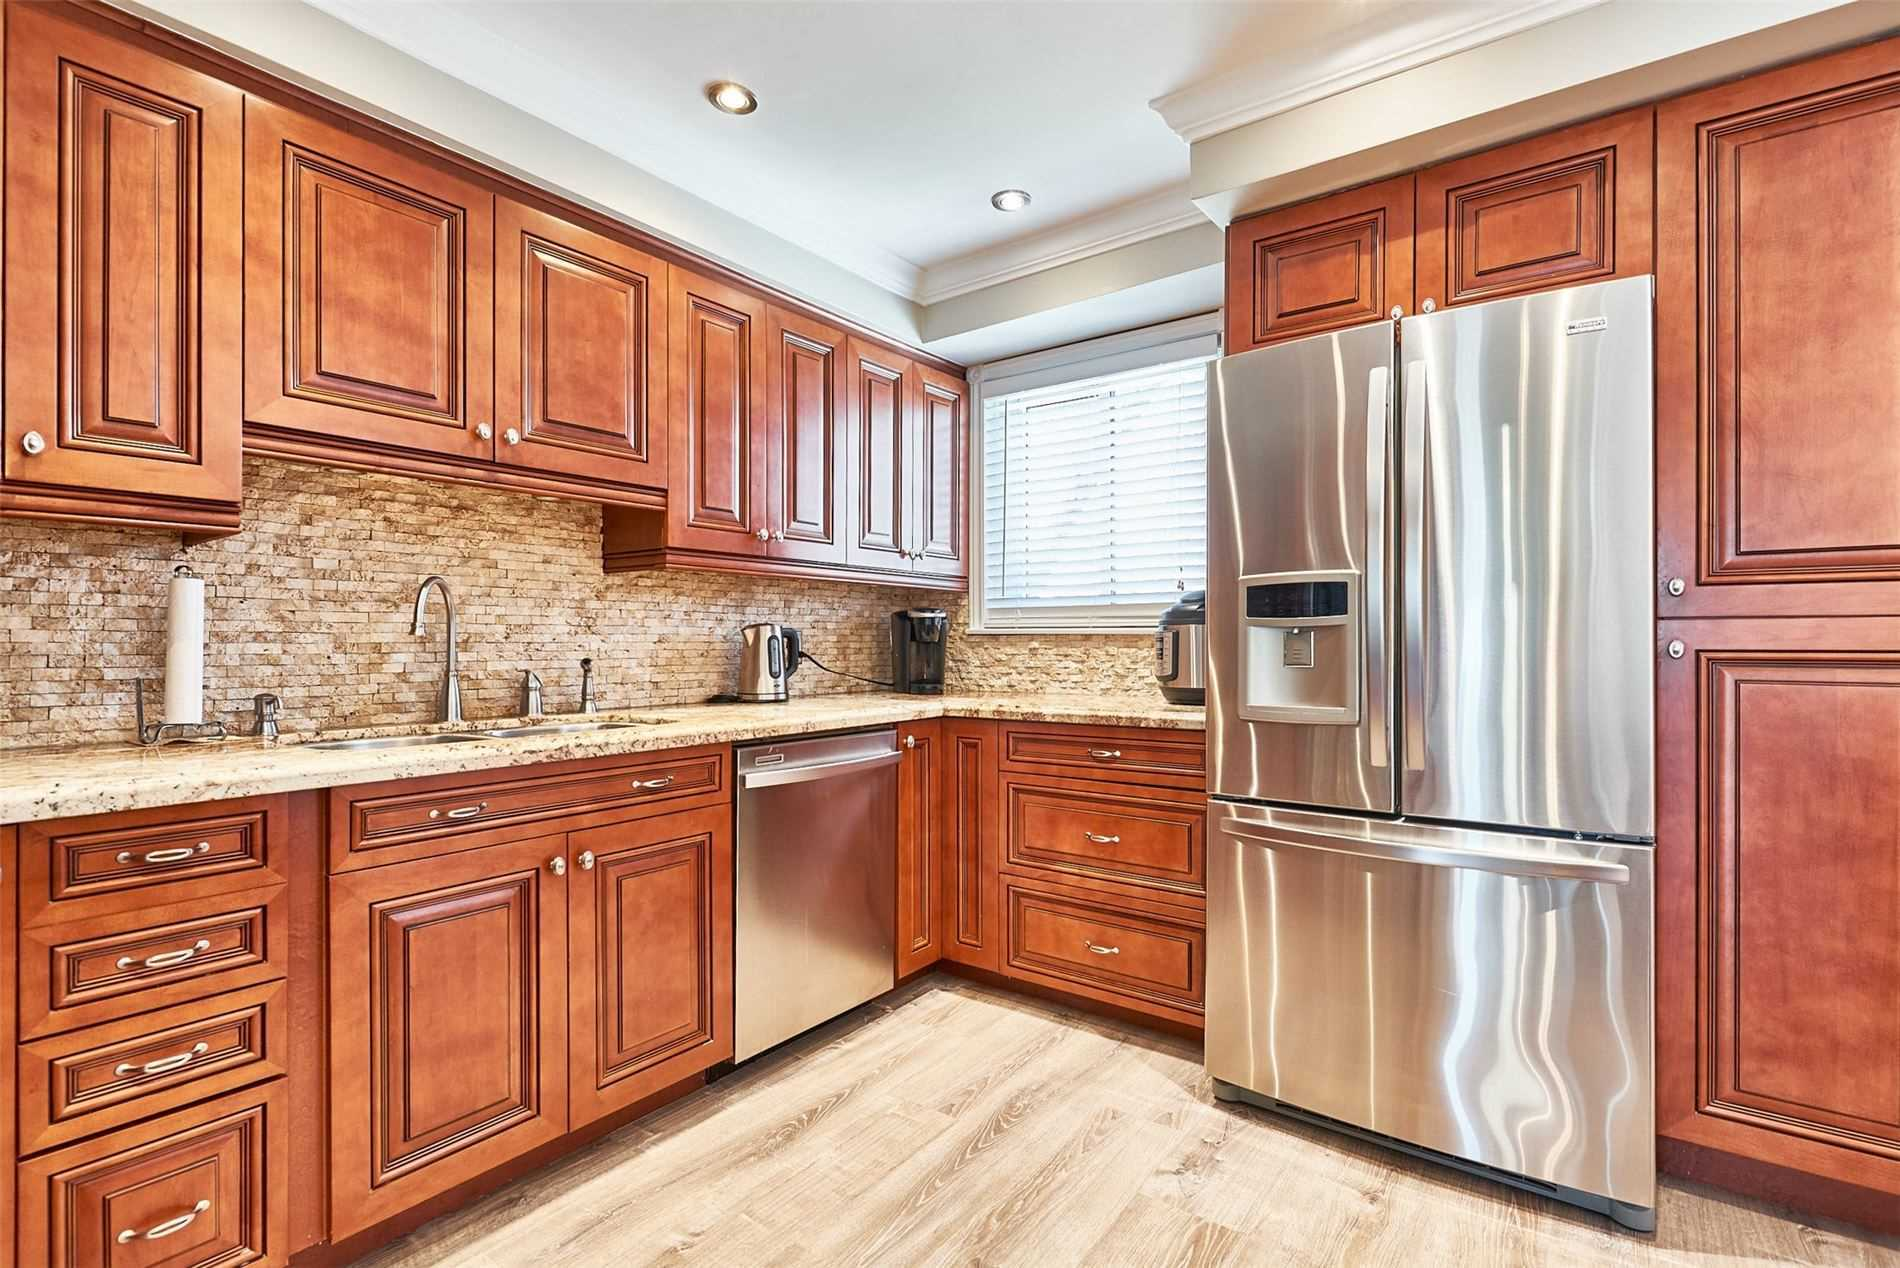 Image 5 of 33 showing inside of 3 Bedroom Condo Townhouse 2-Storey for Sale at 33 Clover Ridge Dr W Unit# 9, Ajax L1S3M5